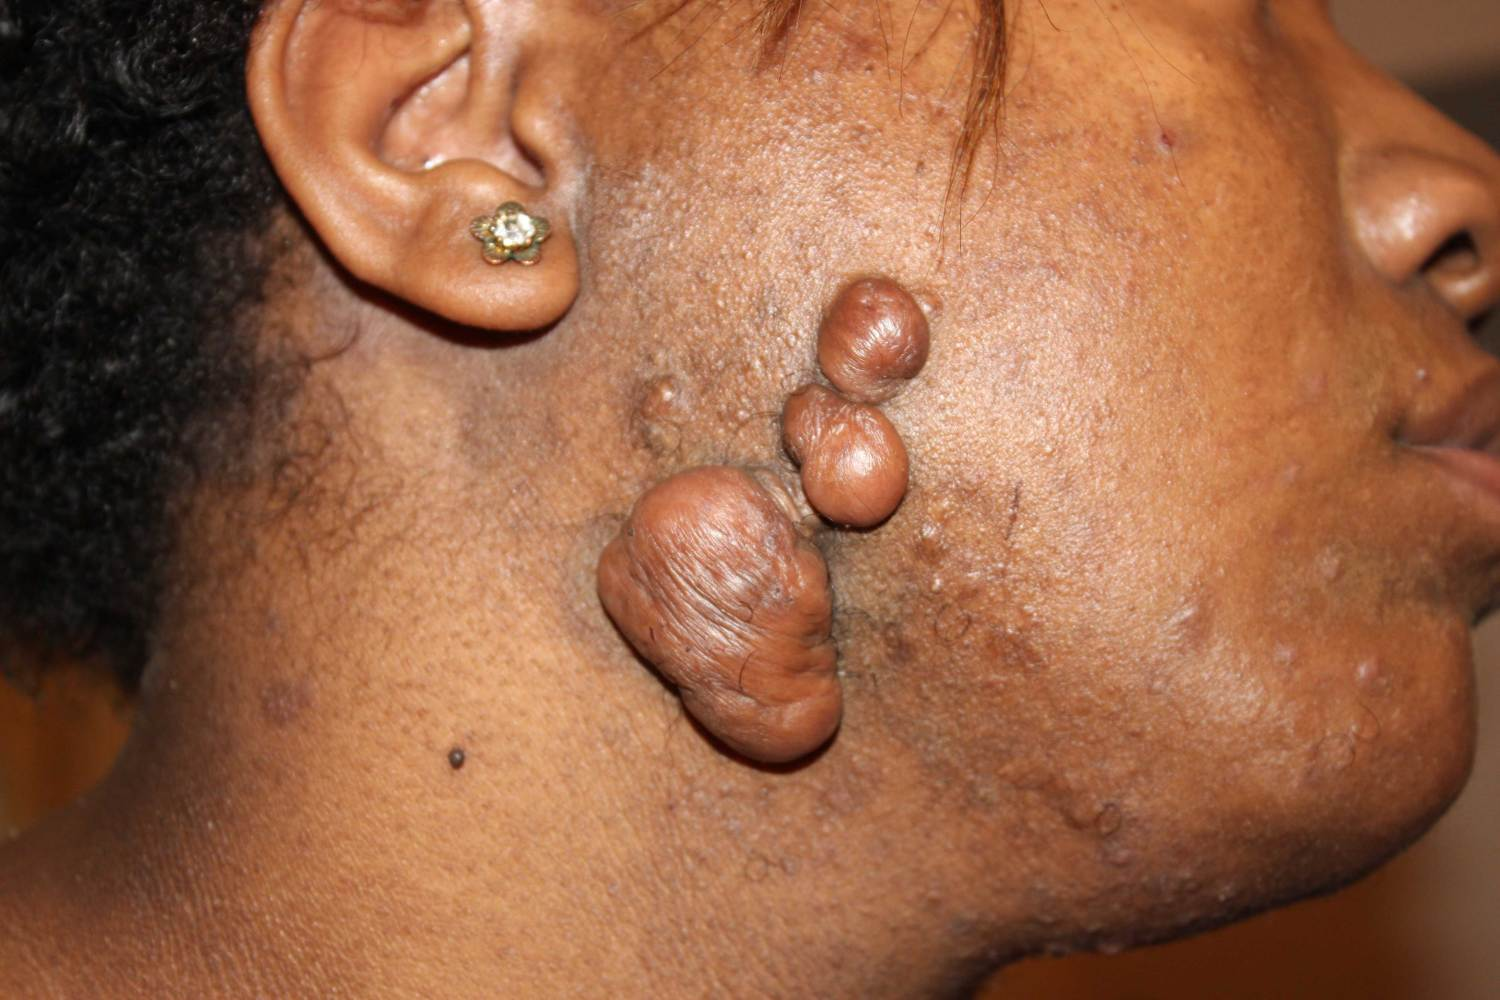 Advanced facial keloid tumors in a young African American female.